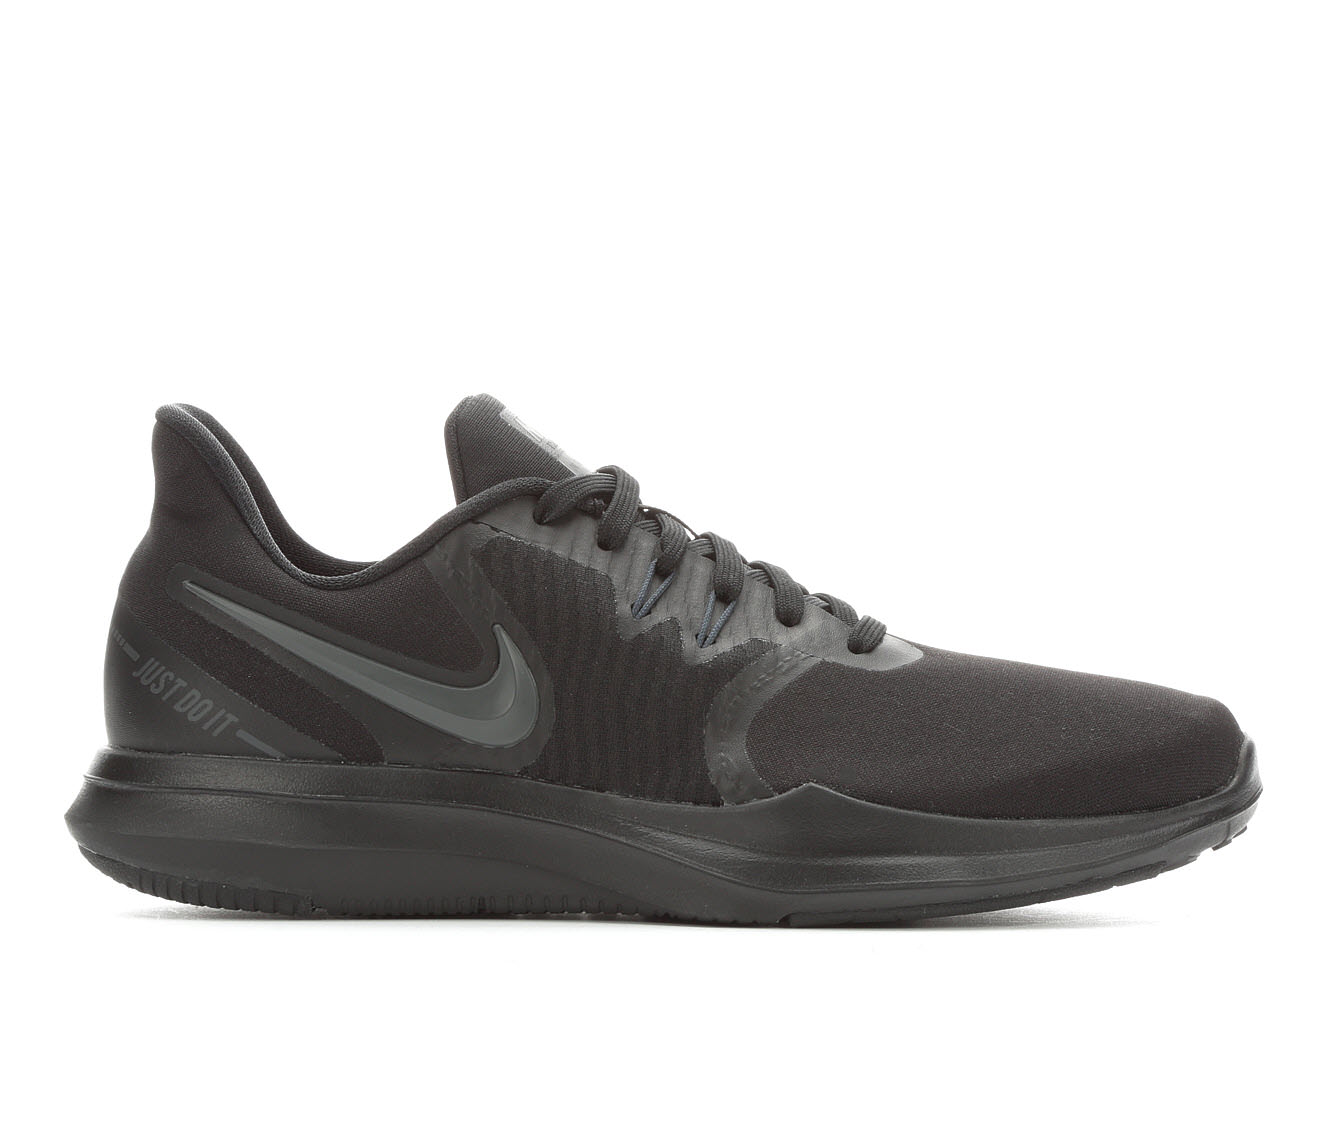 Nike In-Season TR 8 Women's Athletic Shoe (Black)